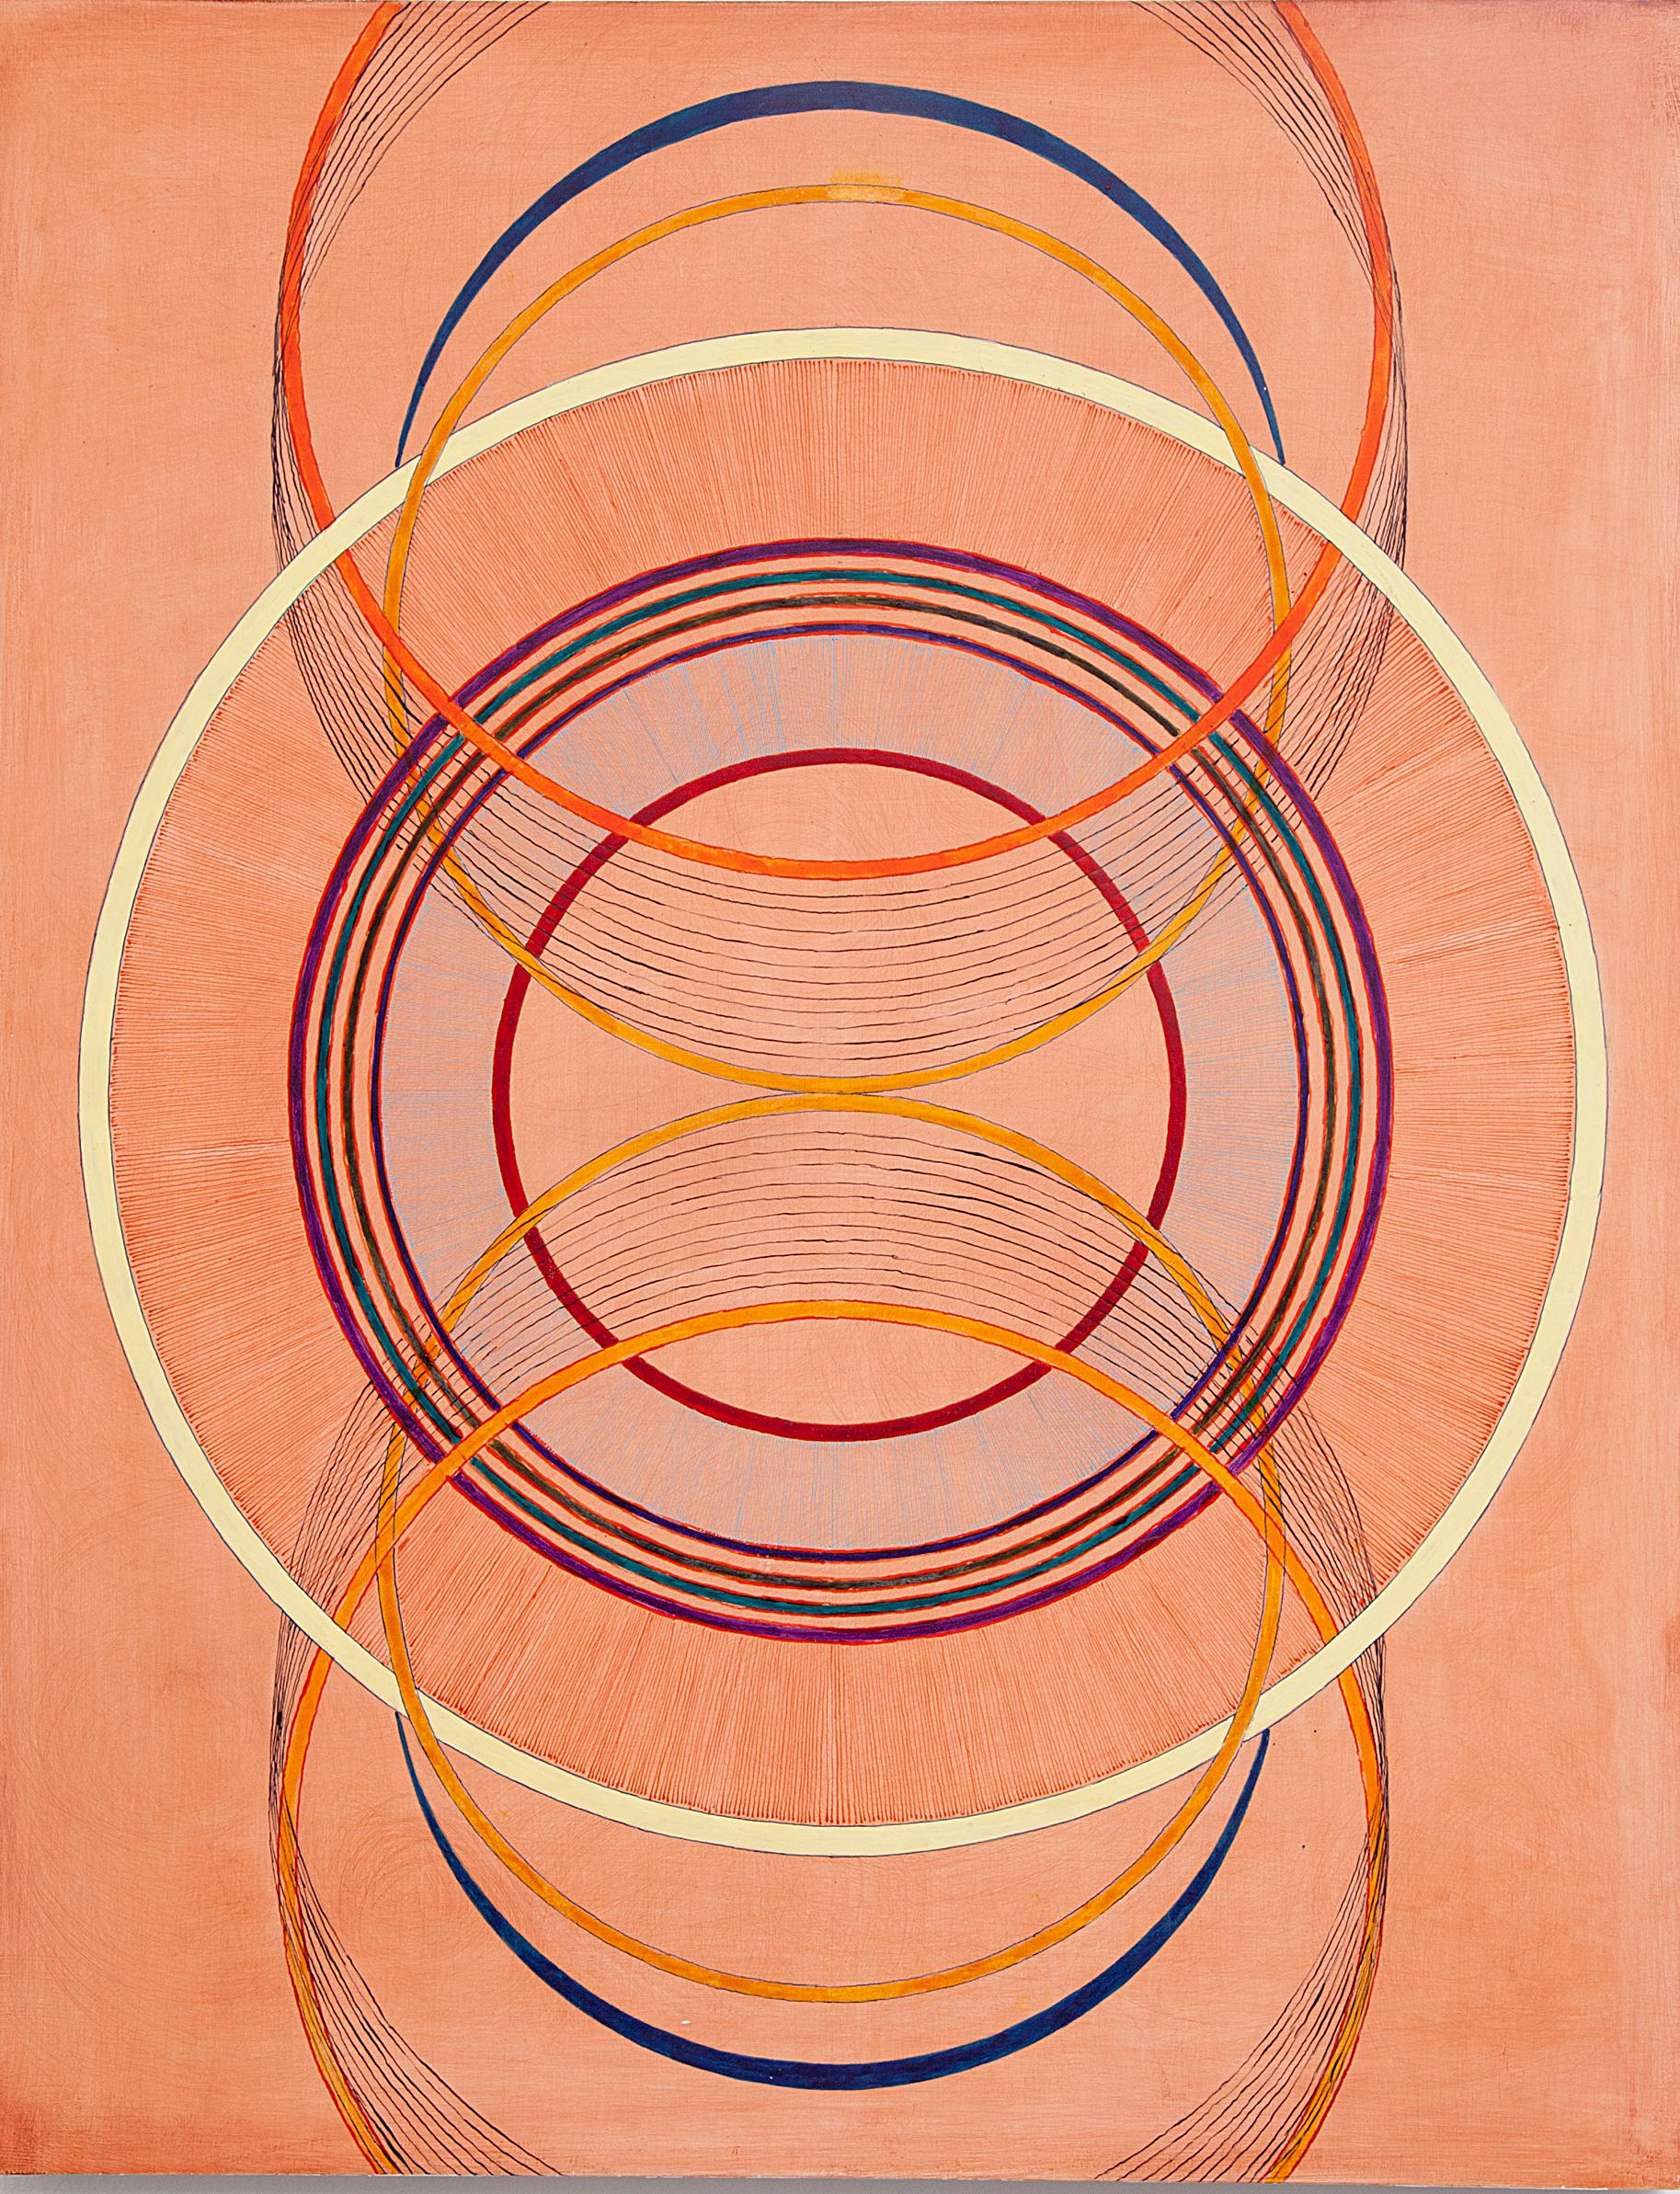 Tayo Heuser, Touch, 2016, ink on wood panel, Geometric Abstraction, Meditative